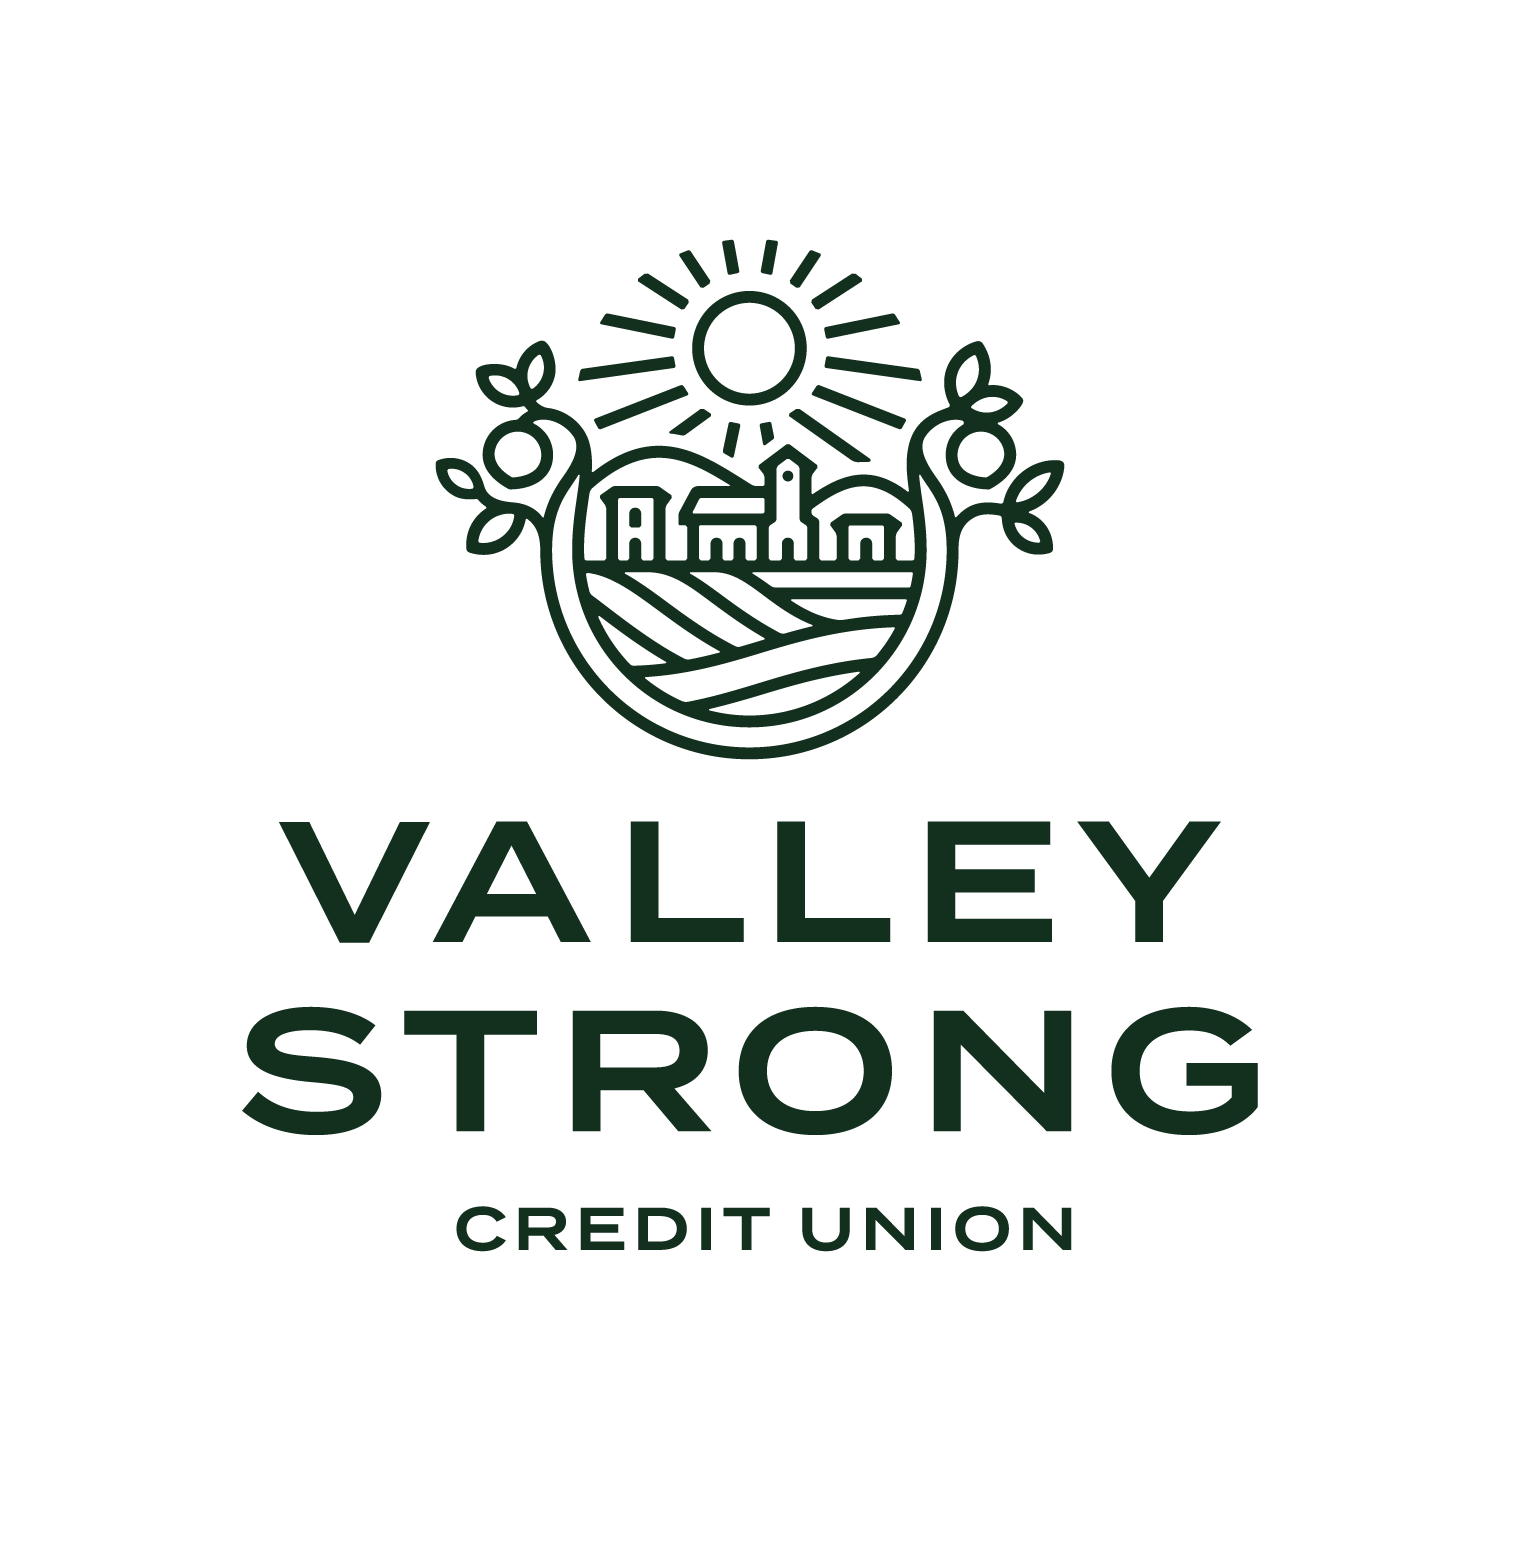 7 Valley Strong Credit Union